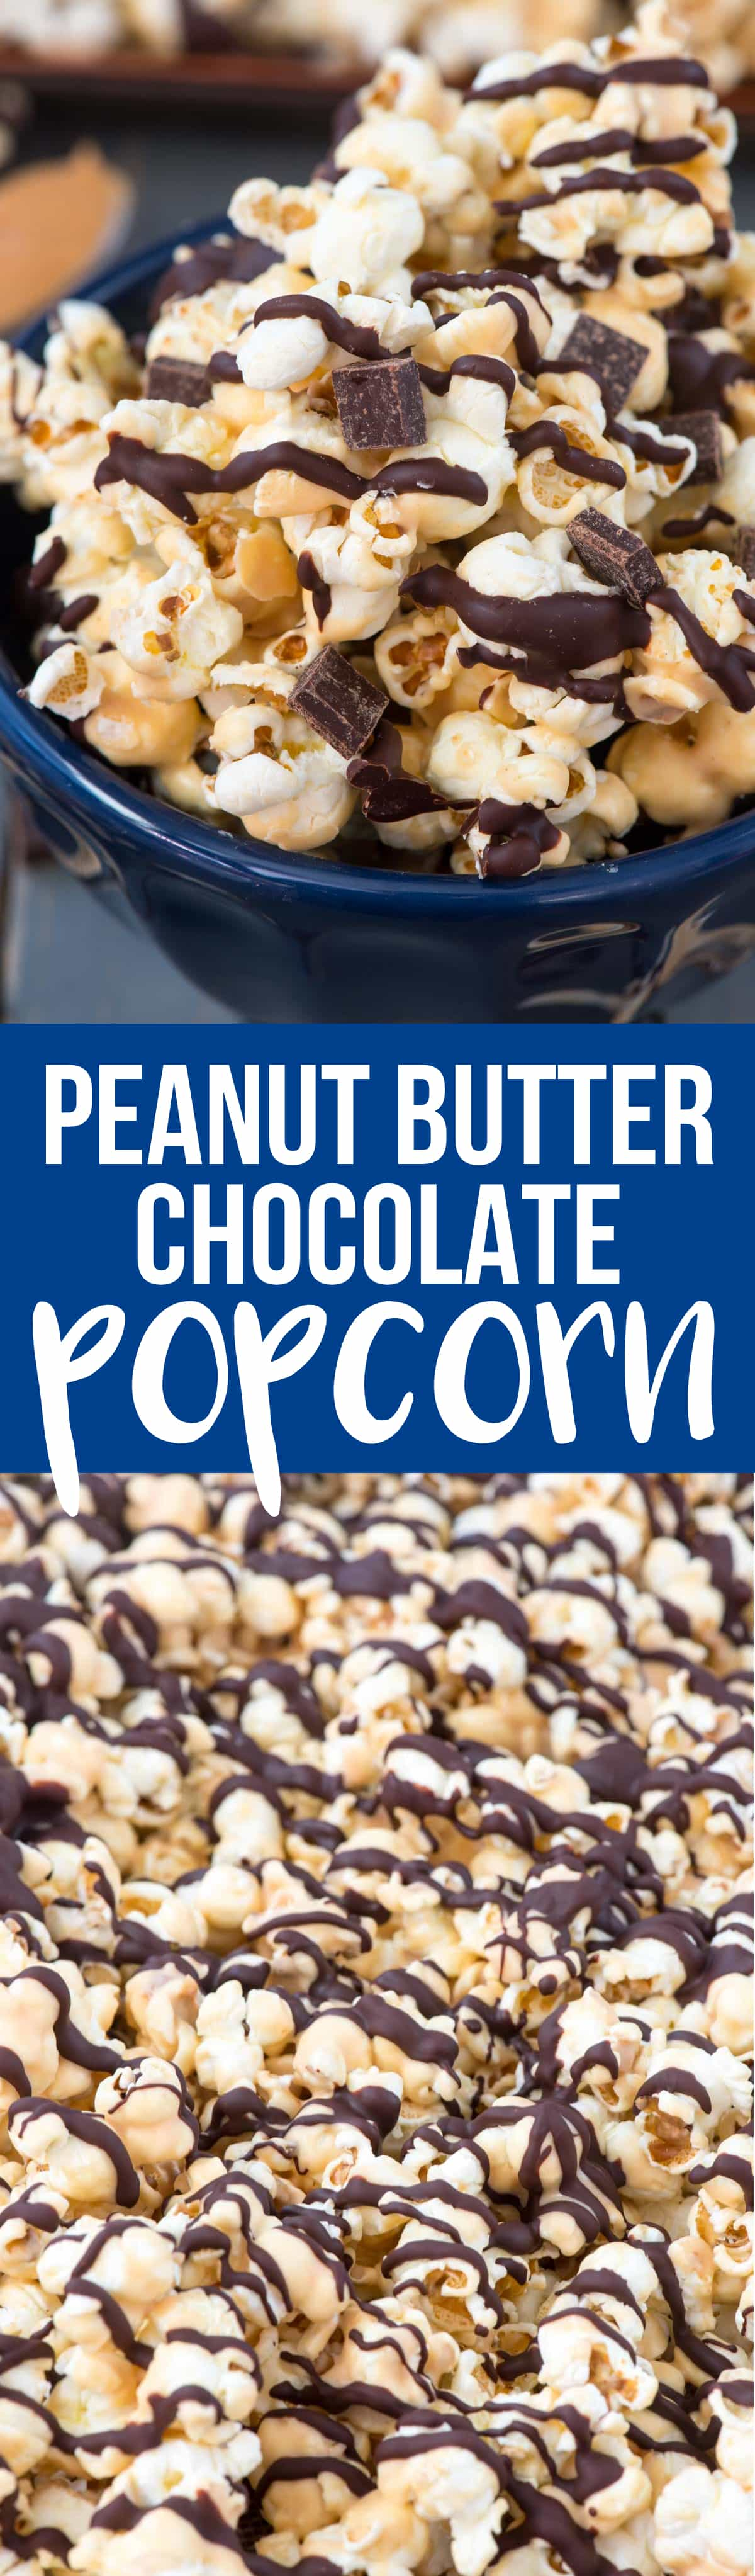 Chocolate Peanut Butter Popcorn is an easy 4 ingredient popcorn recipe that is perfect for dessert or movie night, or for gifting!